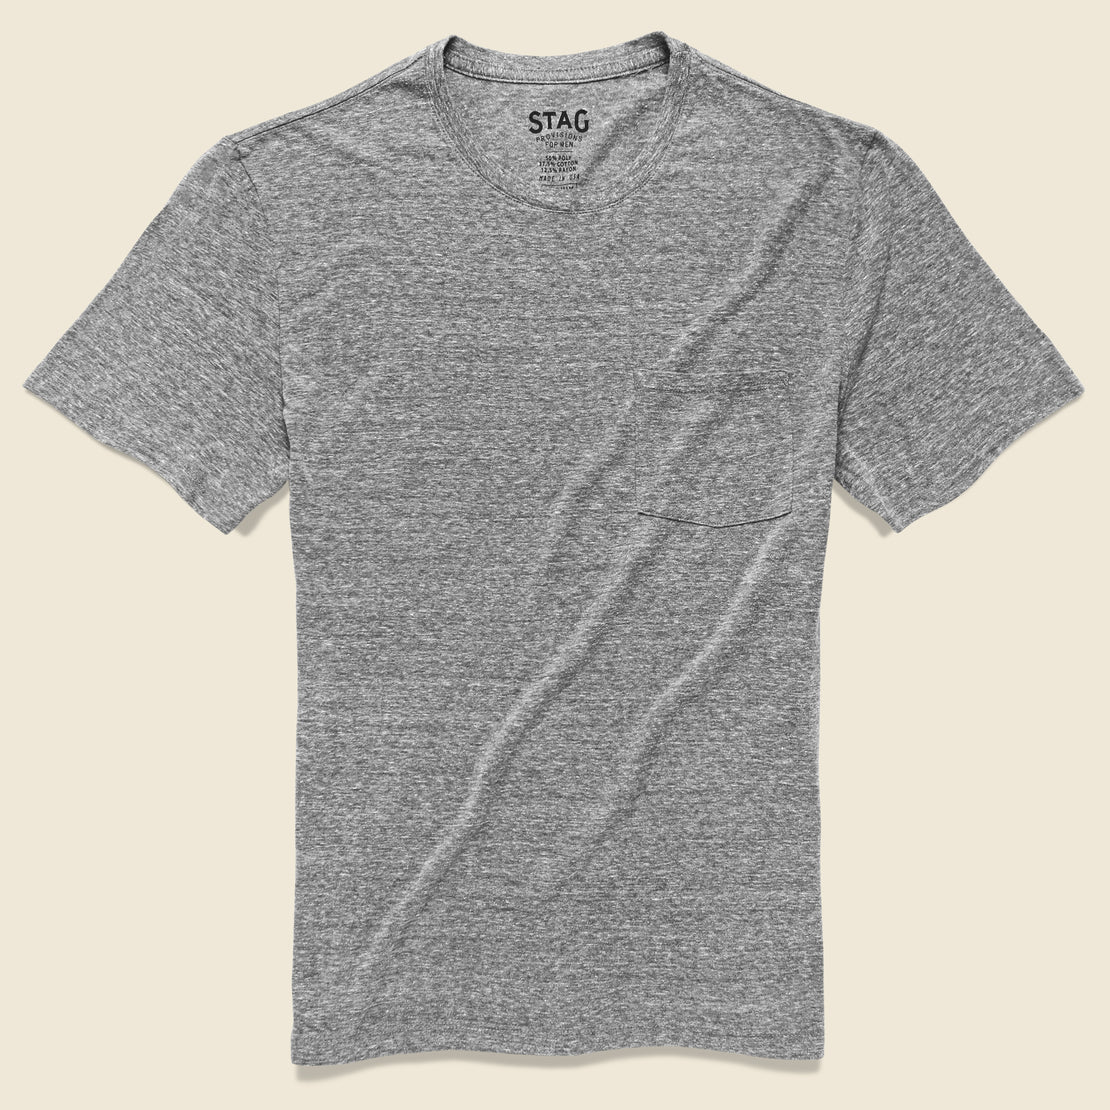 STAG Pocket Tee - Grey